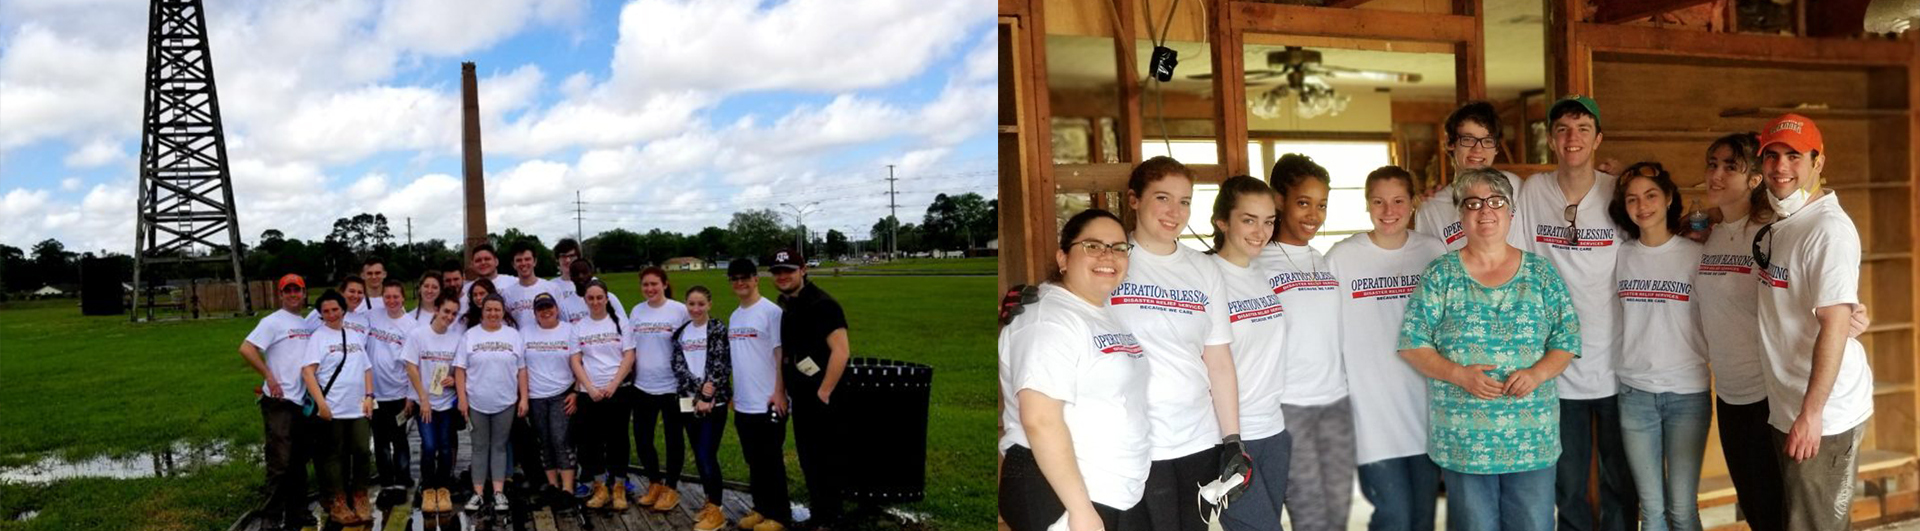 St. Joseph's students went to Houston to help with Hurricane Harvey cleanup during spring break 2018.